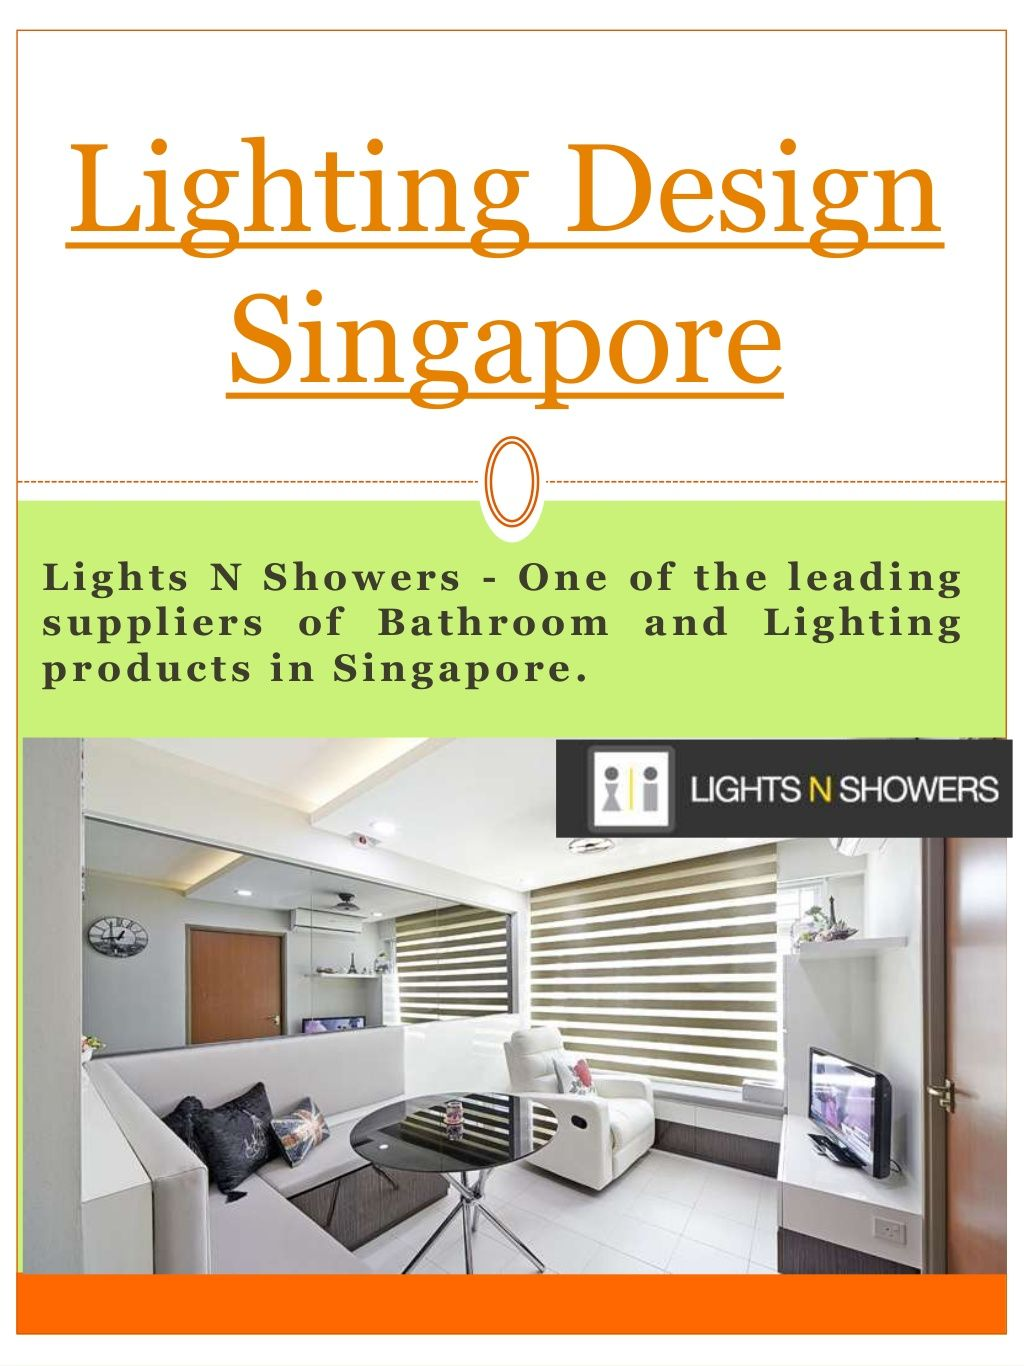 Among The Greatest Things About Designer Lighting Singapore Is New